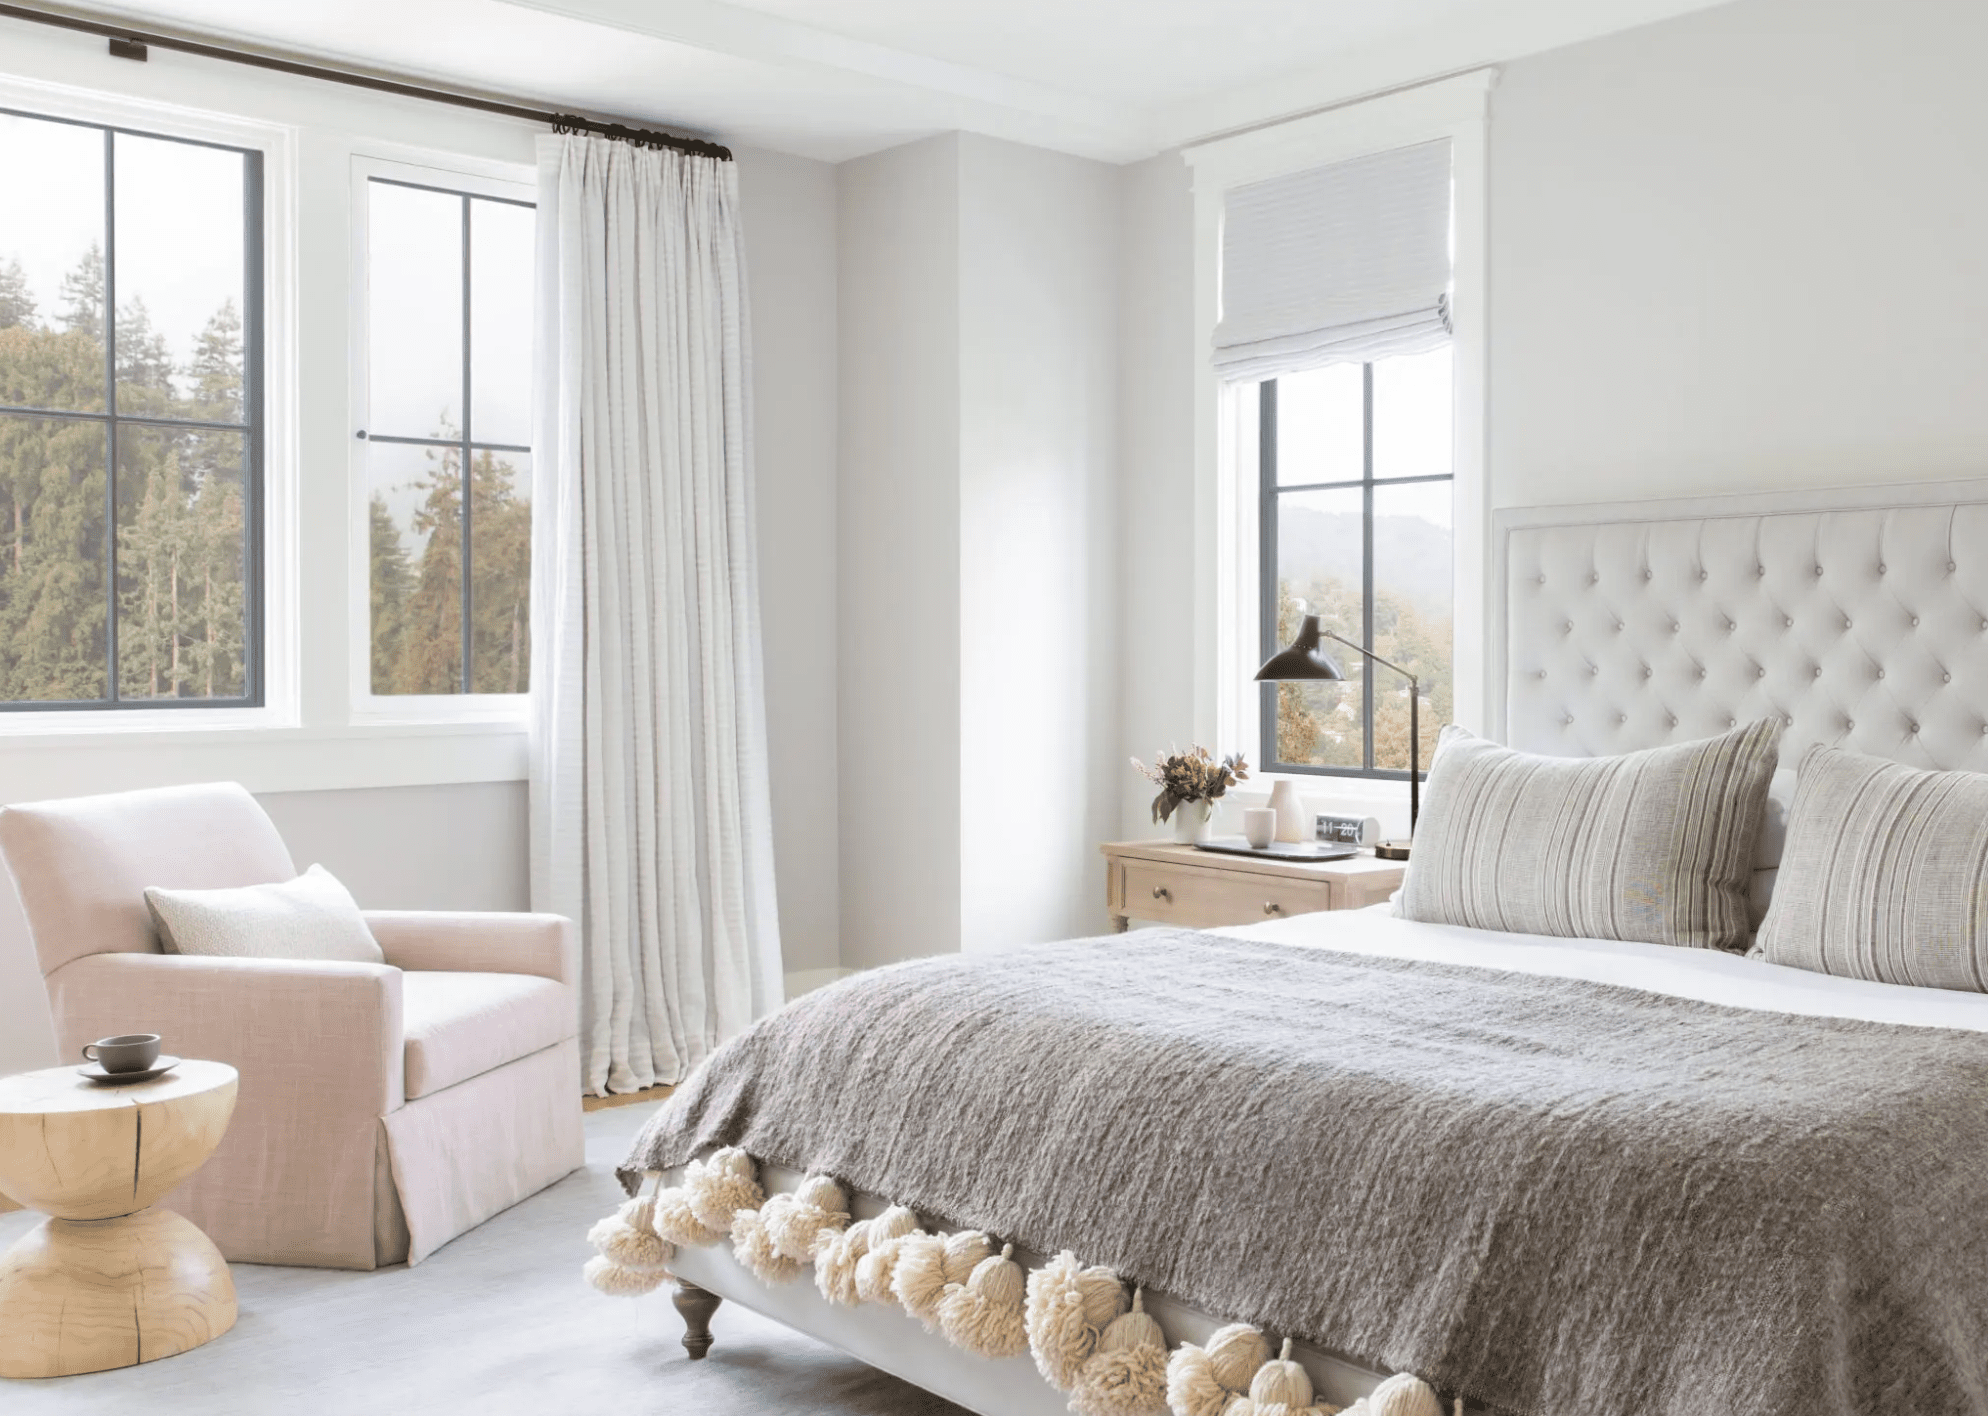 A white bed with a lavender throw blanket on it